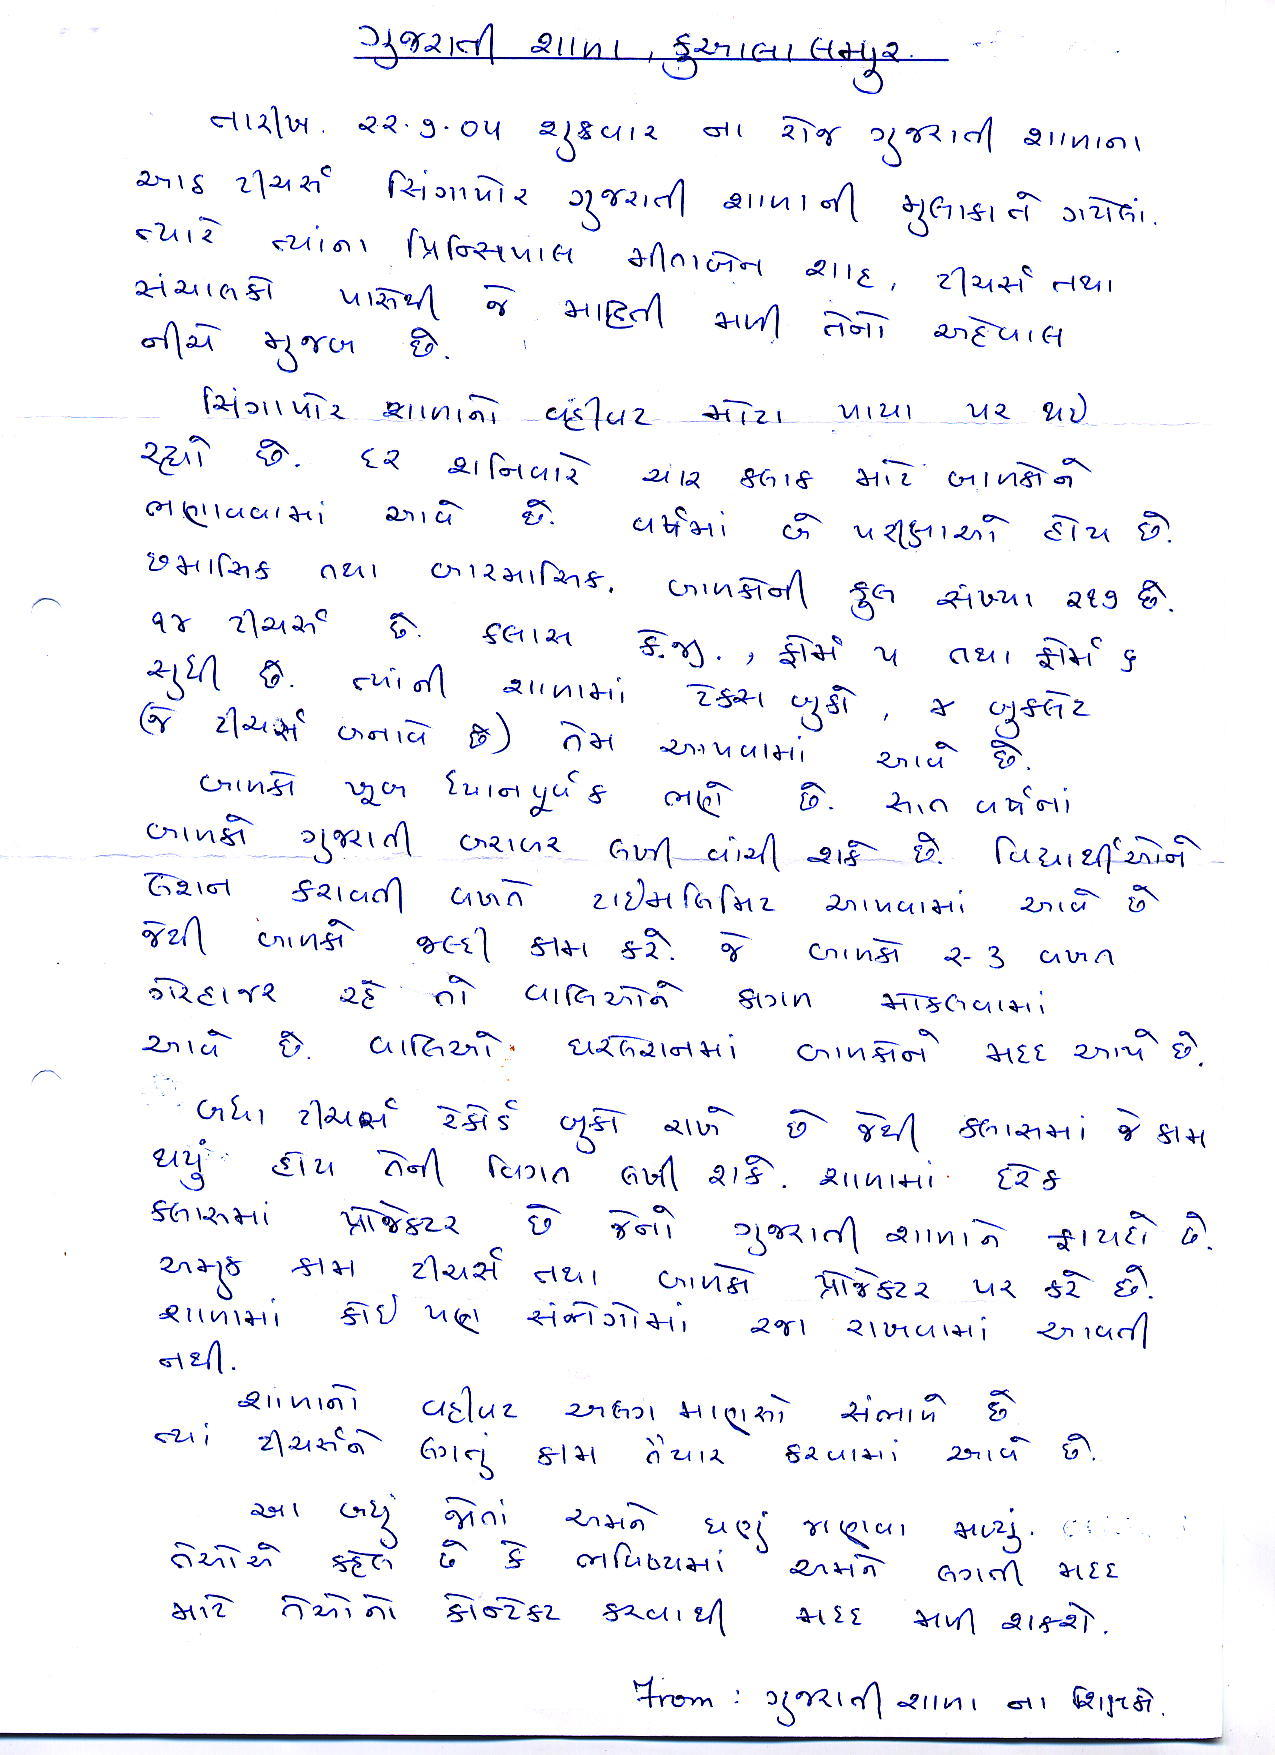 my mother essay in gujarati Great medical school essays how to become a better person essay 3 paragraph essay thesis statement writing essay high my essay tongue on gujarati mother - dude, can i read your essay.